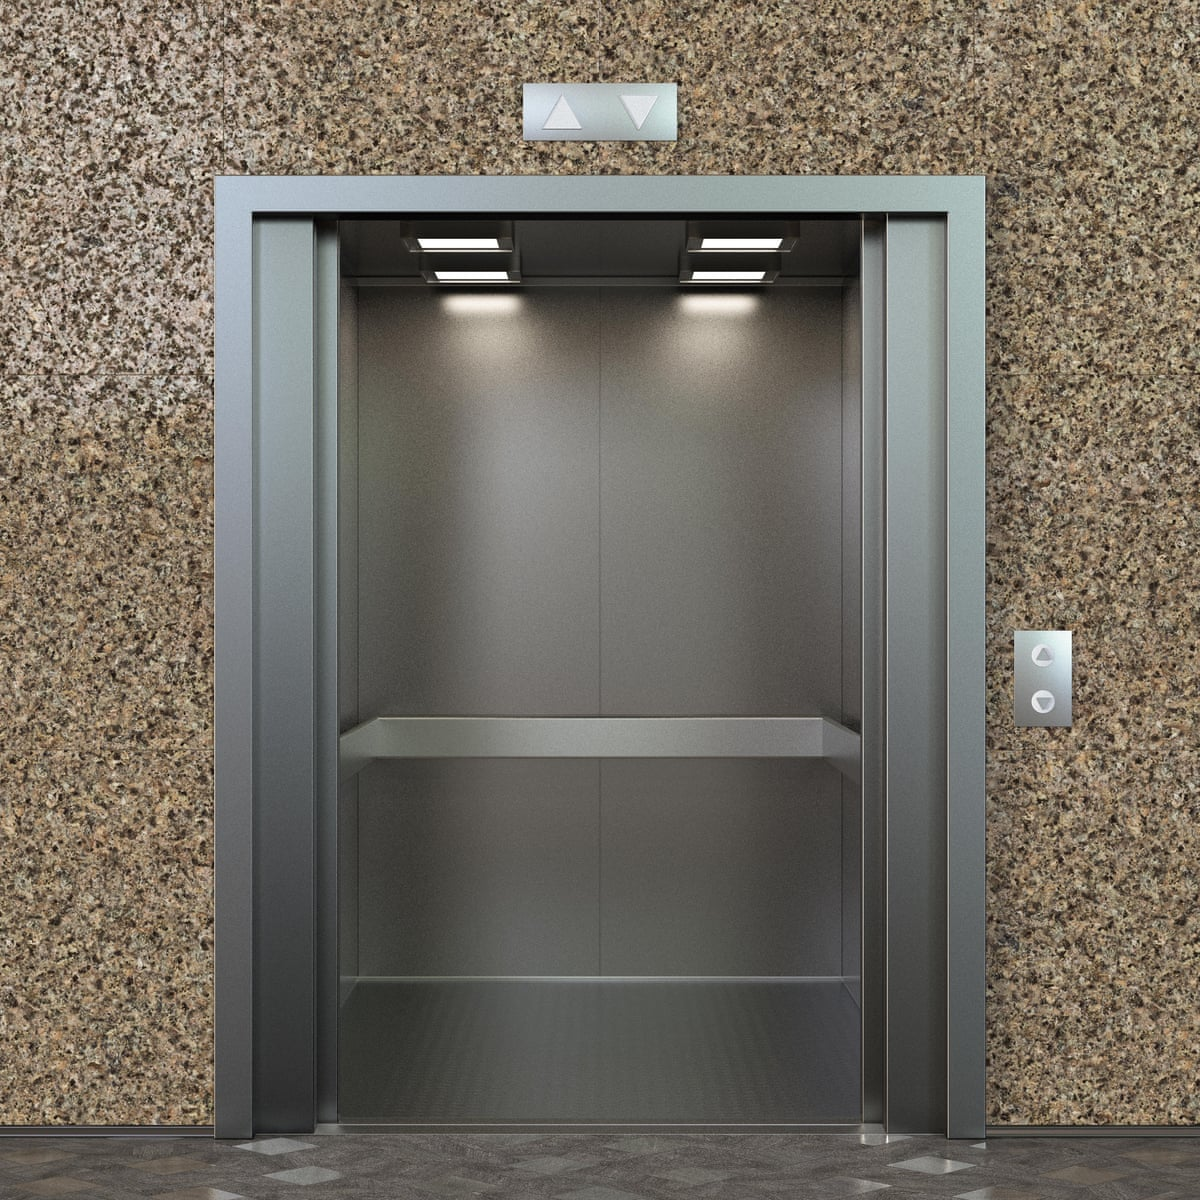 The New York high life has given me a new fear – of elevators ...